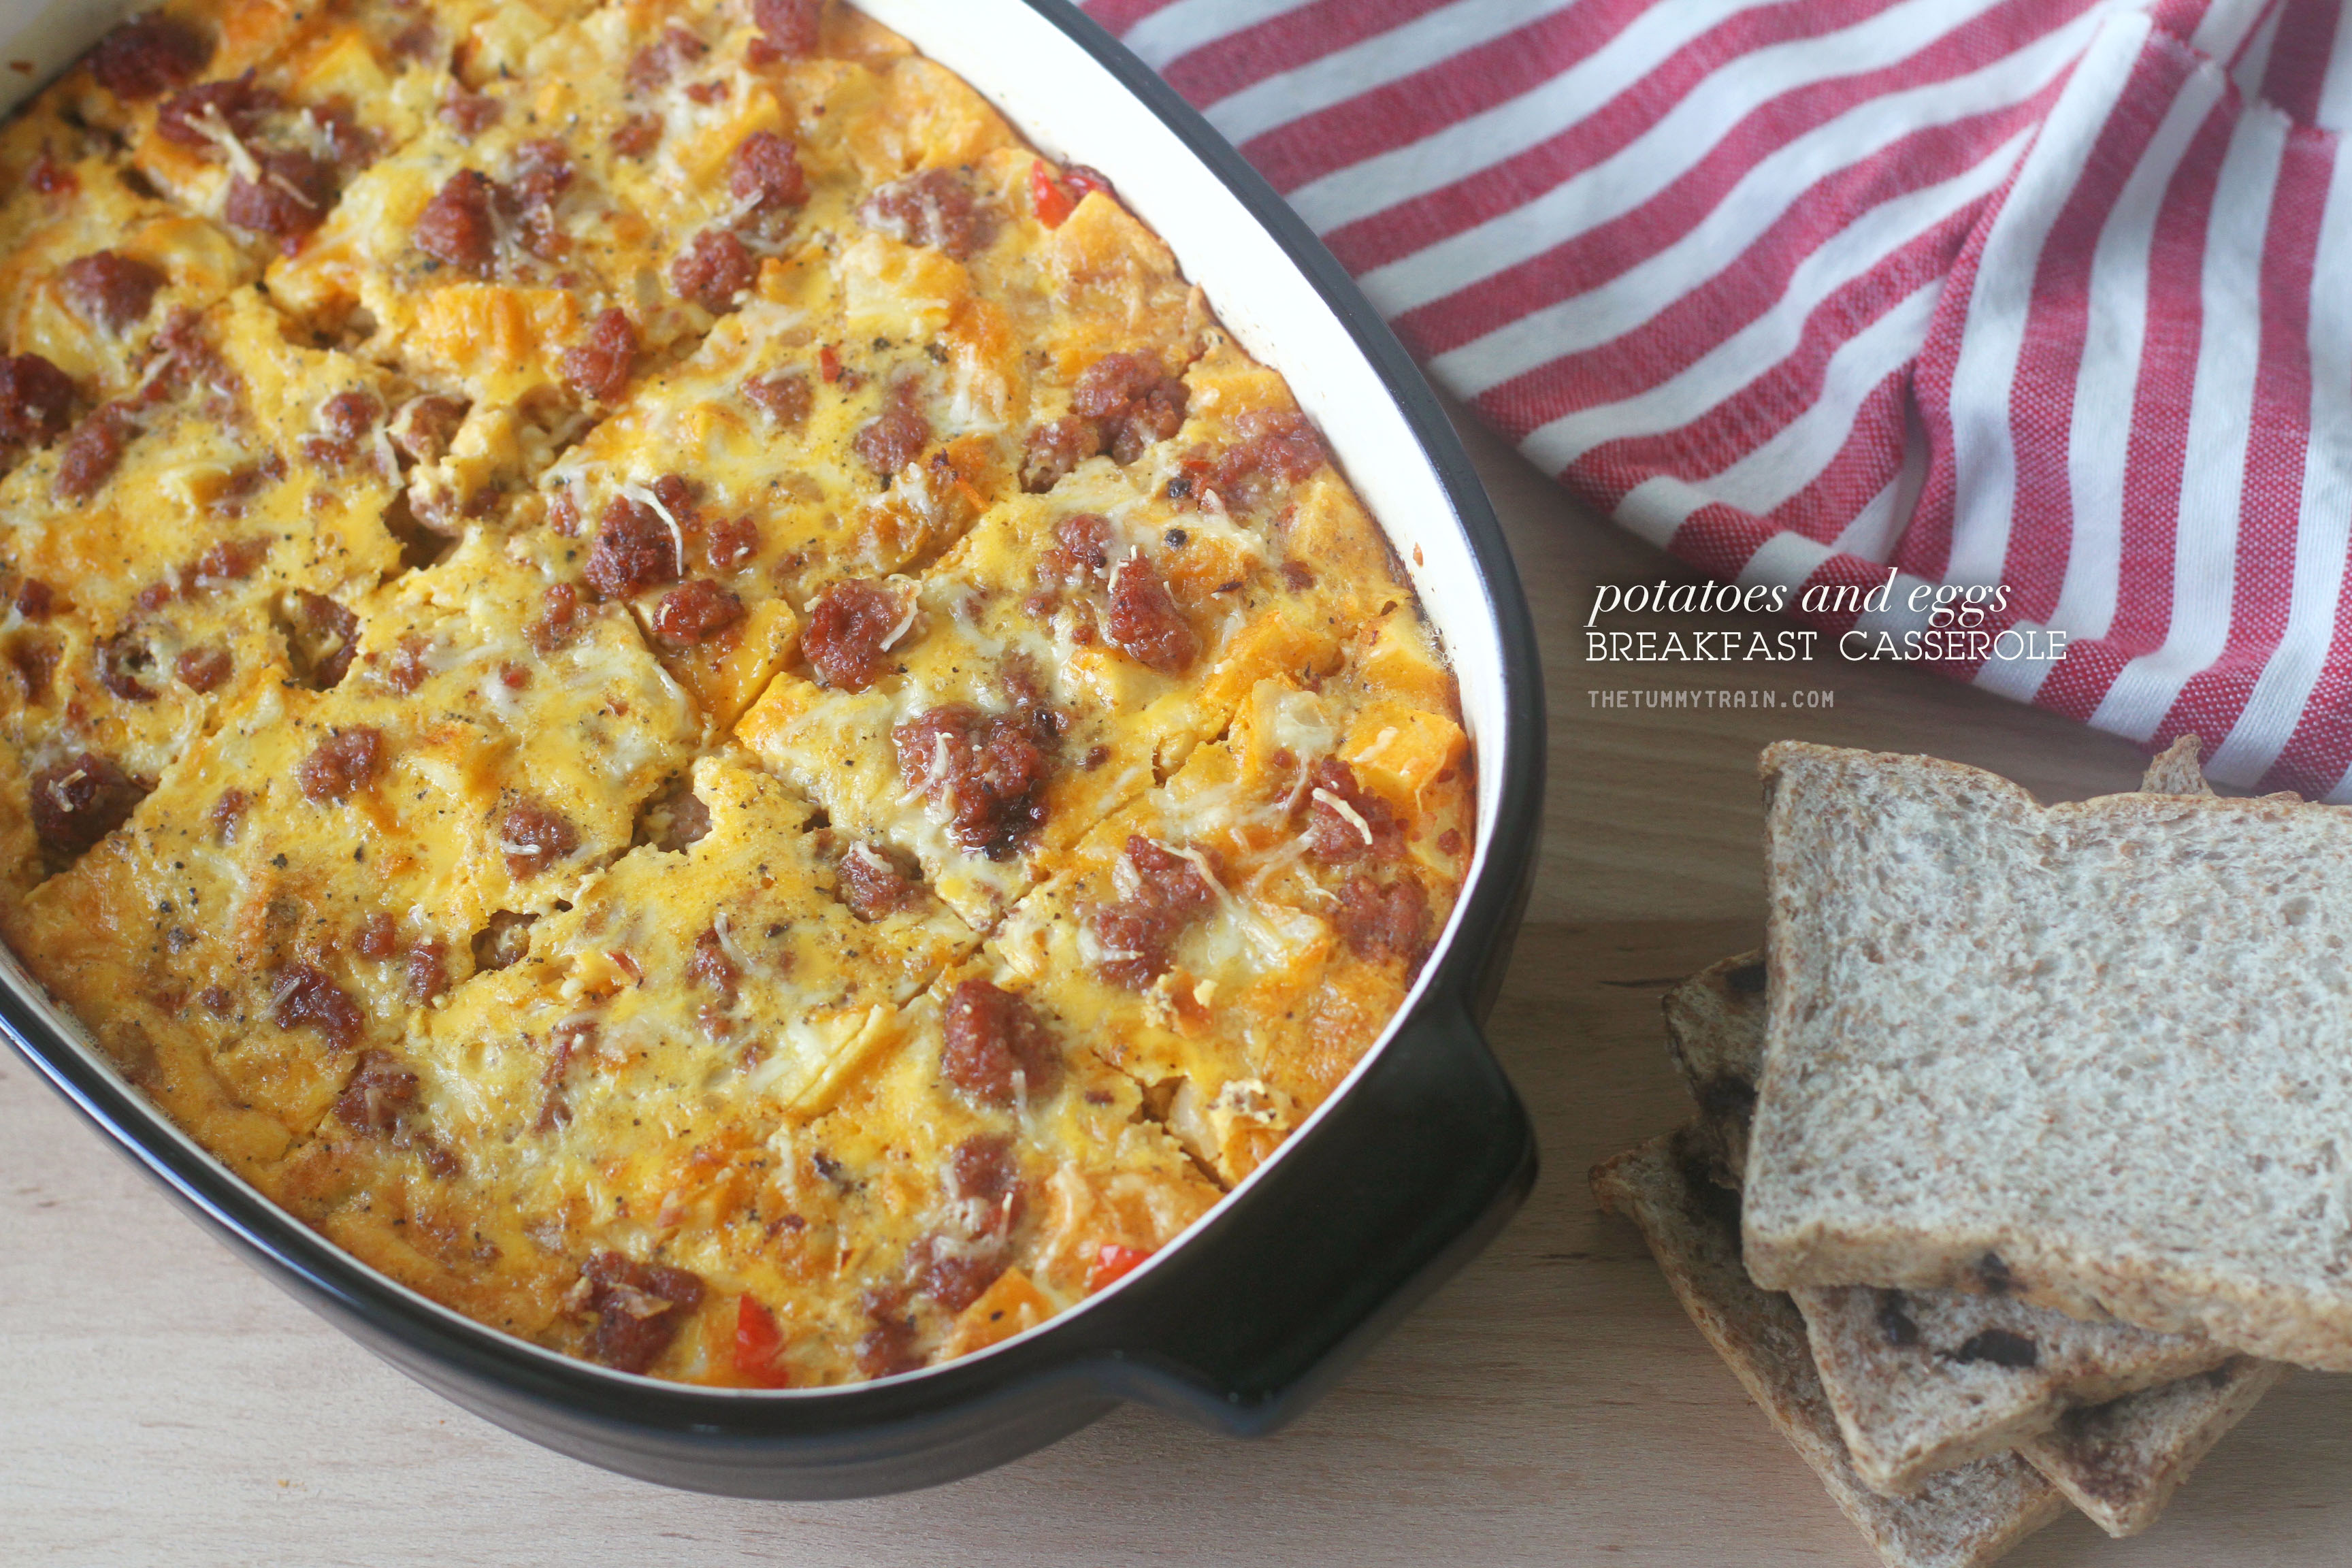 P E Breakfast Casserole 1 - A perfectly filling US Potatoes and Eggs Breakfast Casserole to kick-start your day